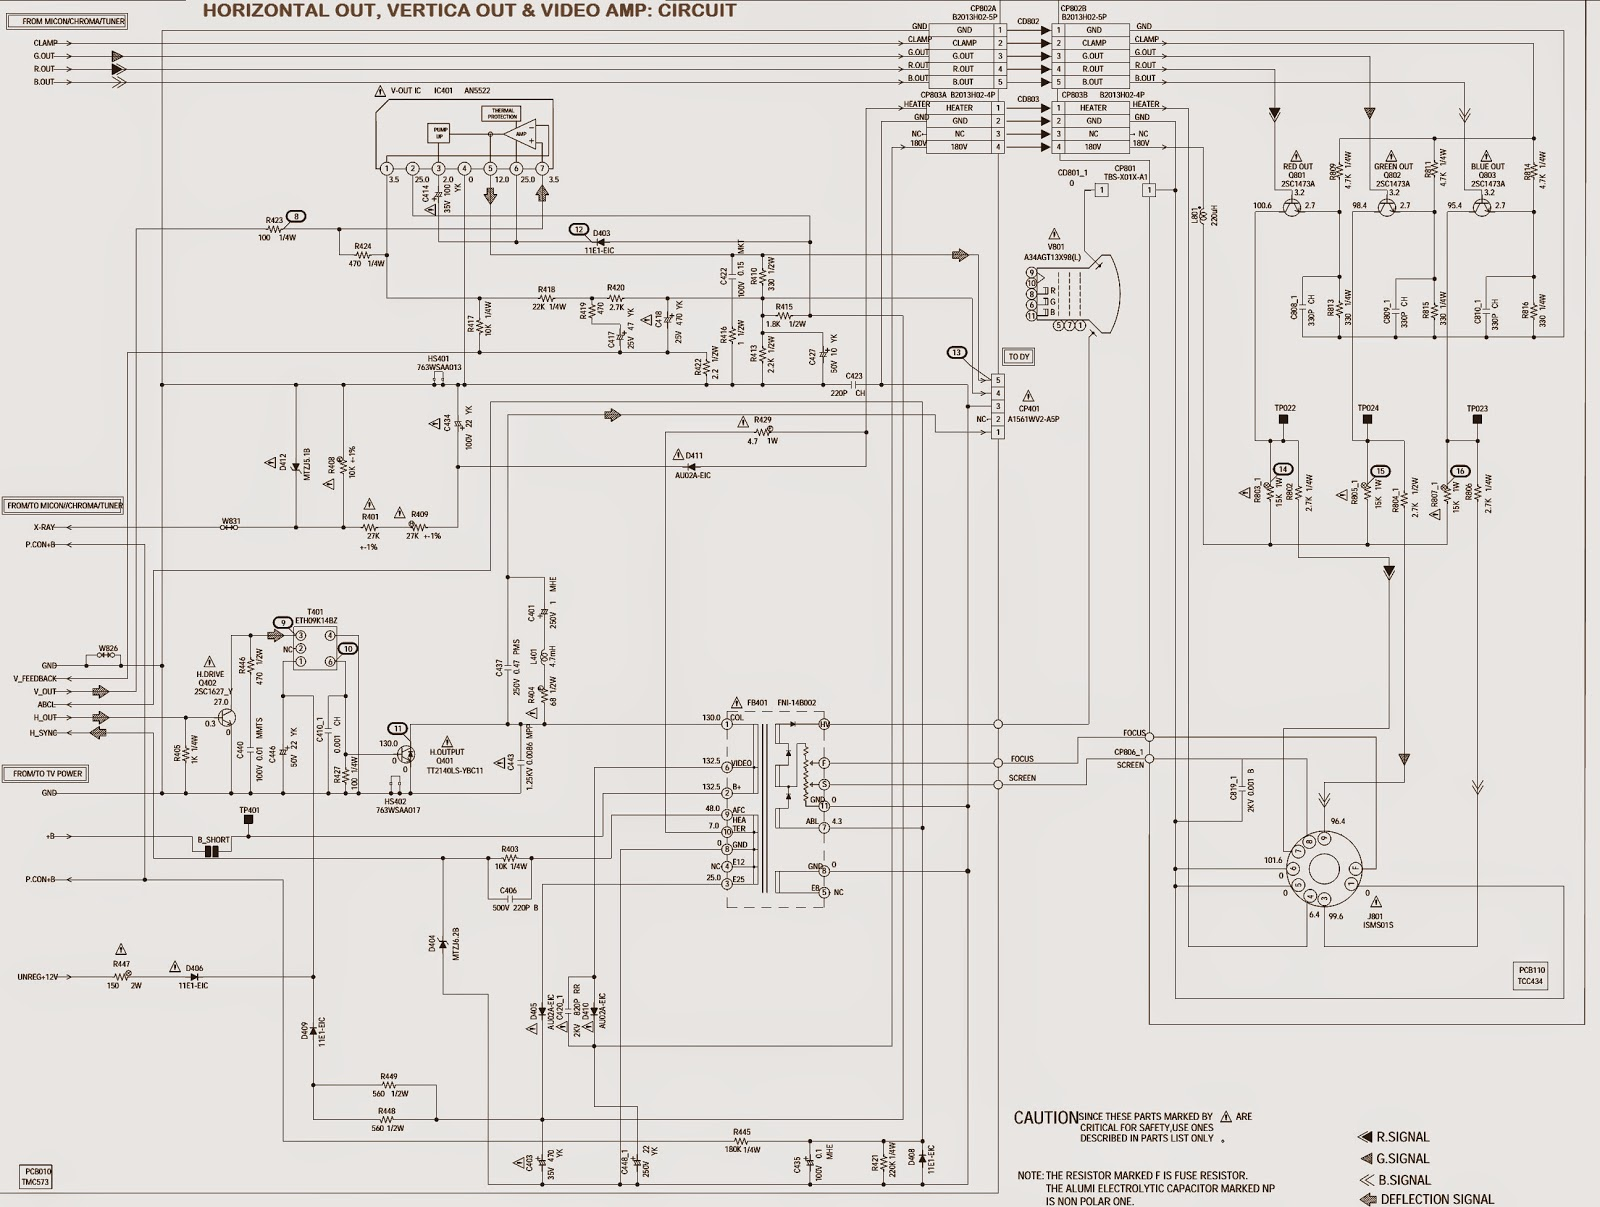 panasonic ct-z1423 _ circuit diagram (schematic) - smps ... 3 wire 120v schematic diagram #10